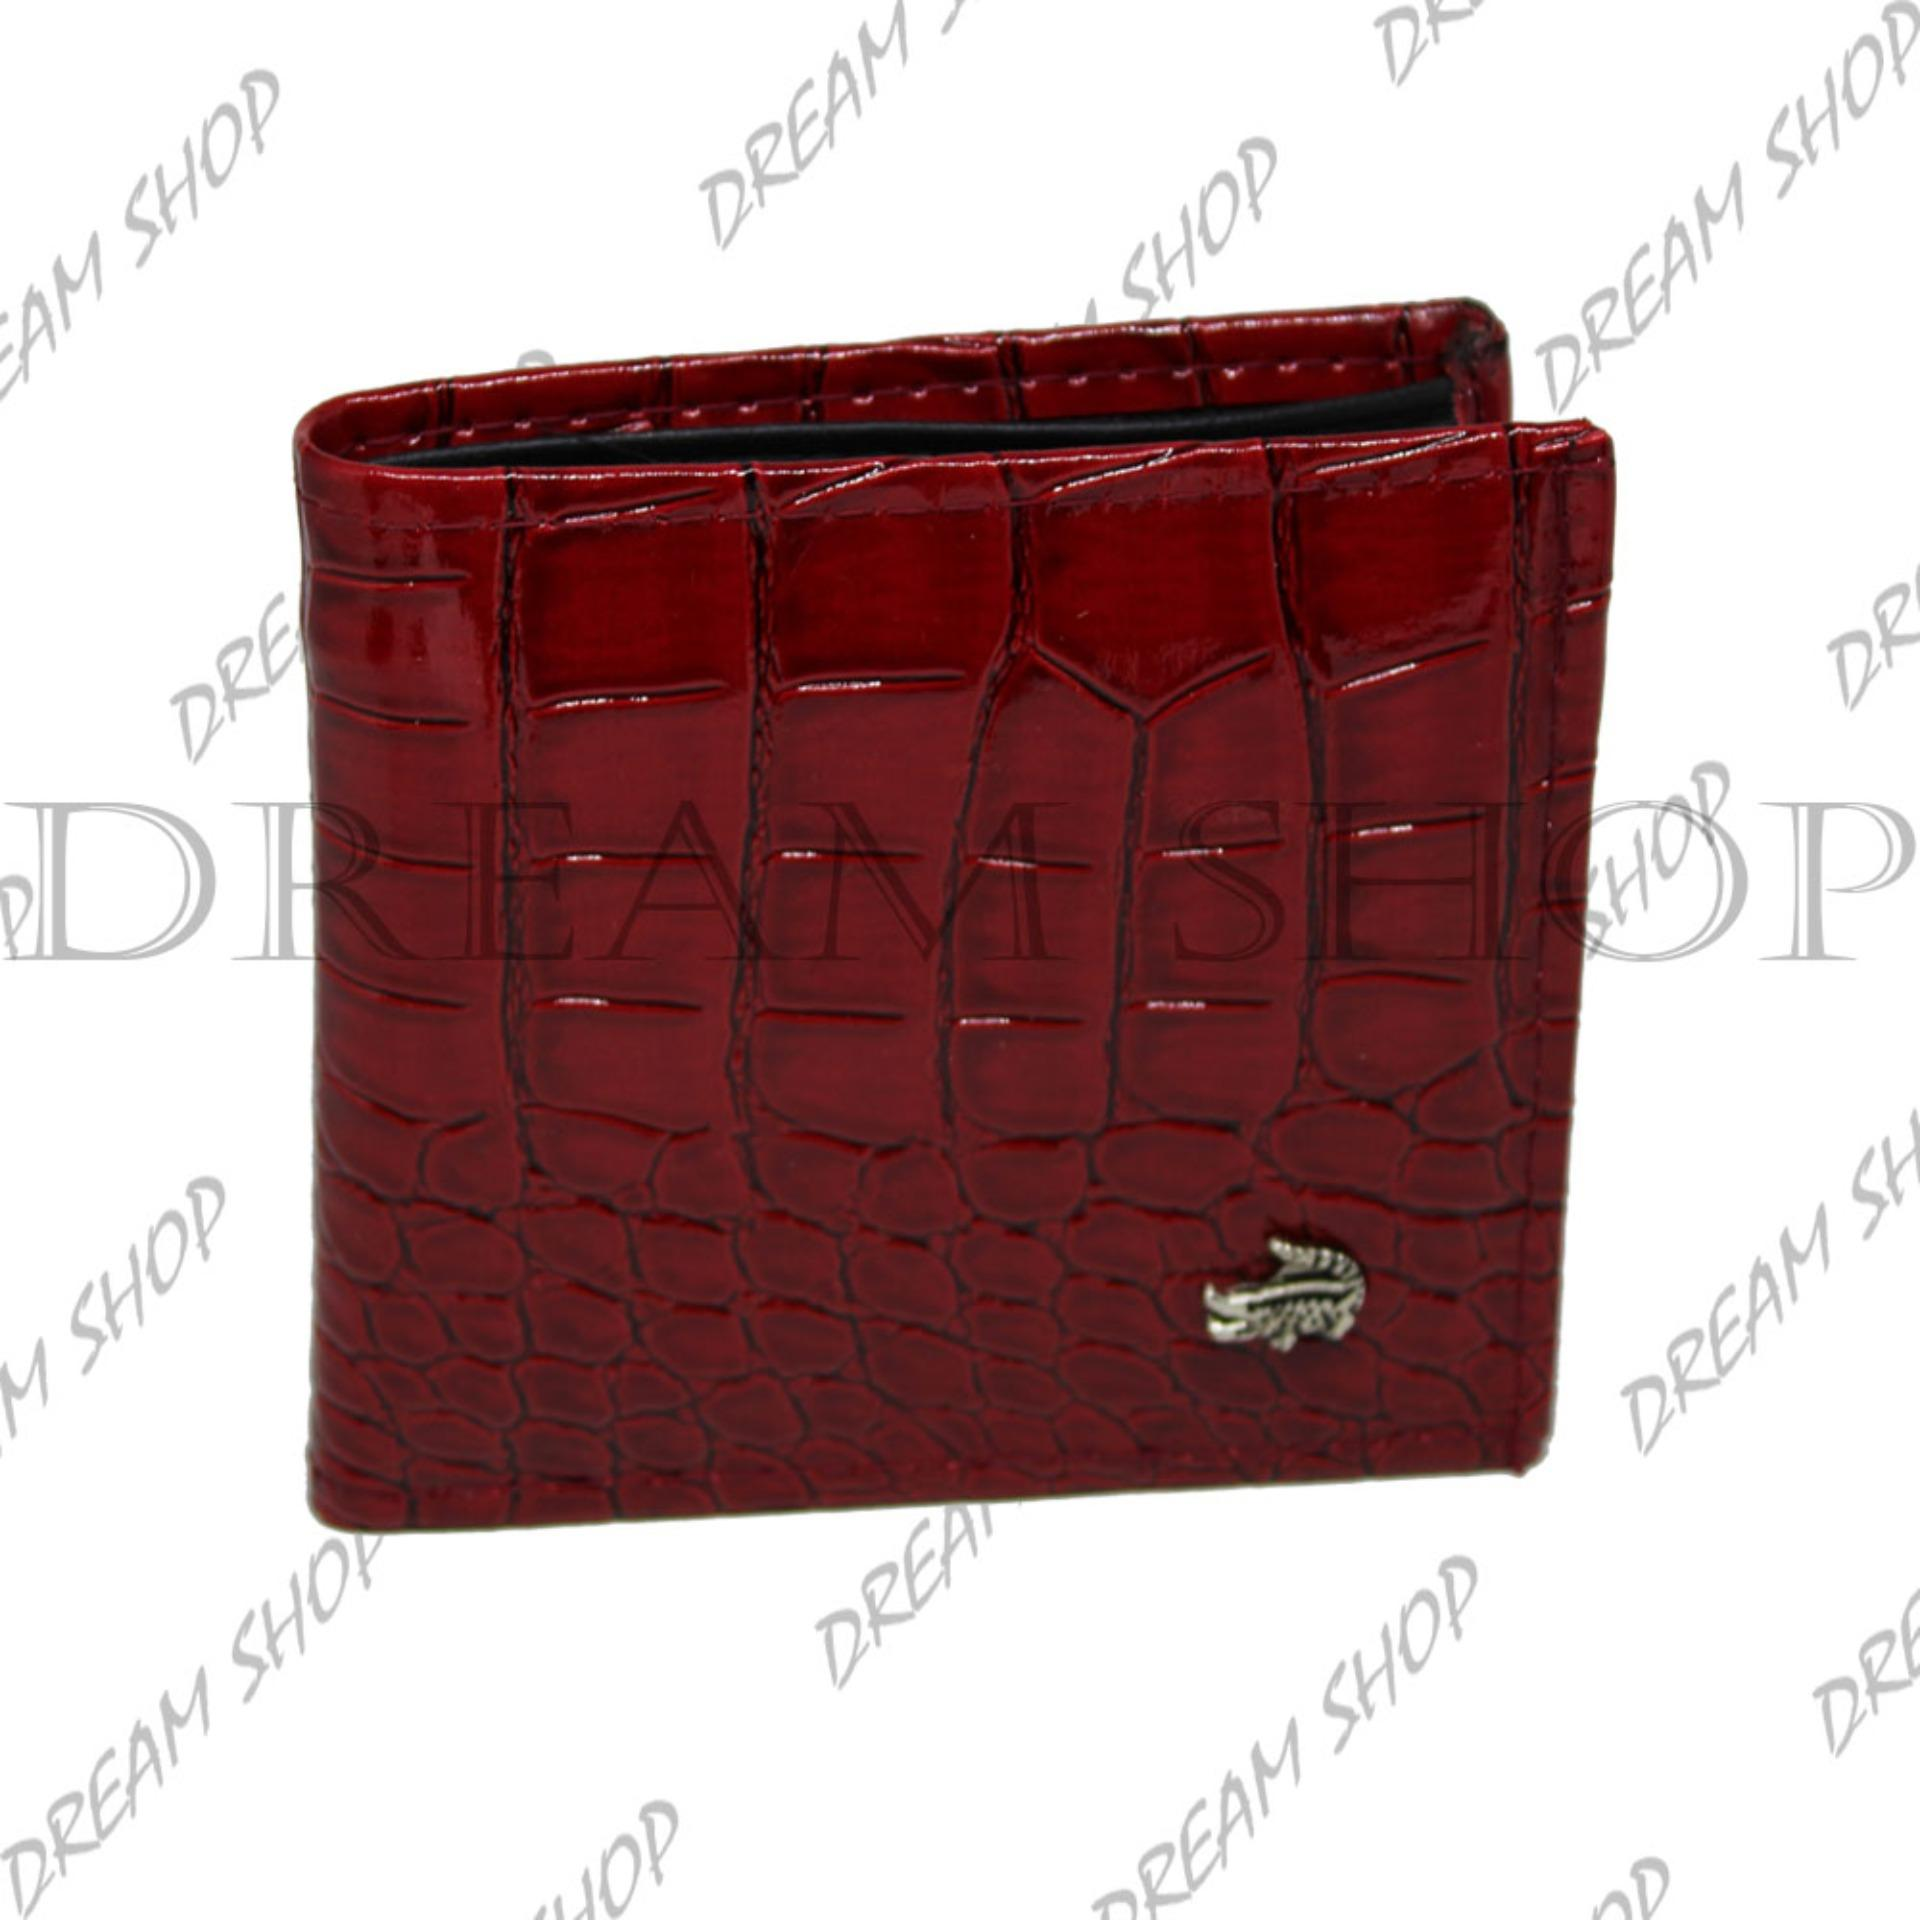 Dream Shop - Dompet Crocodile Pria Termurah - Red